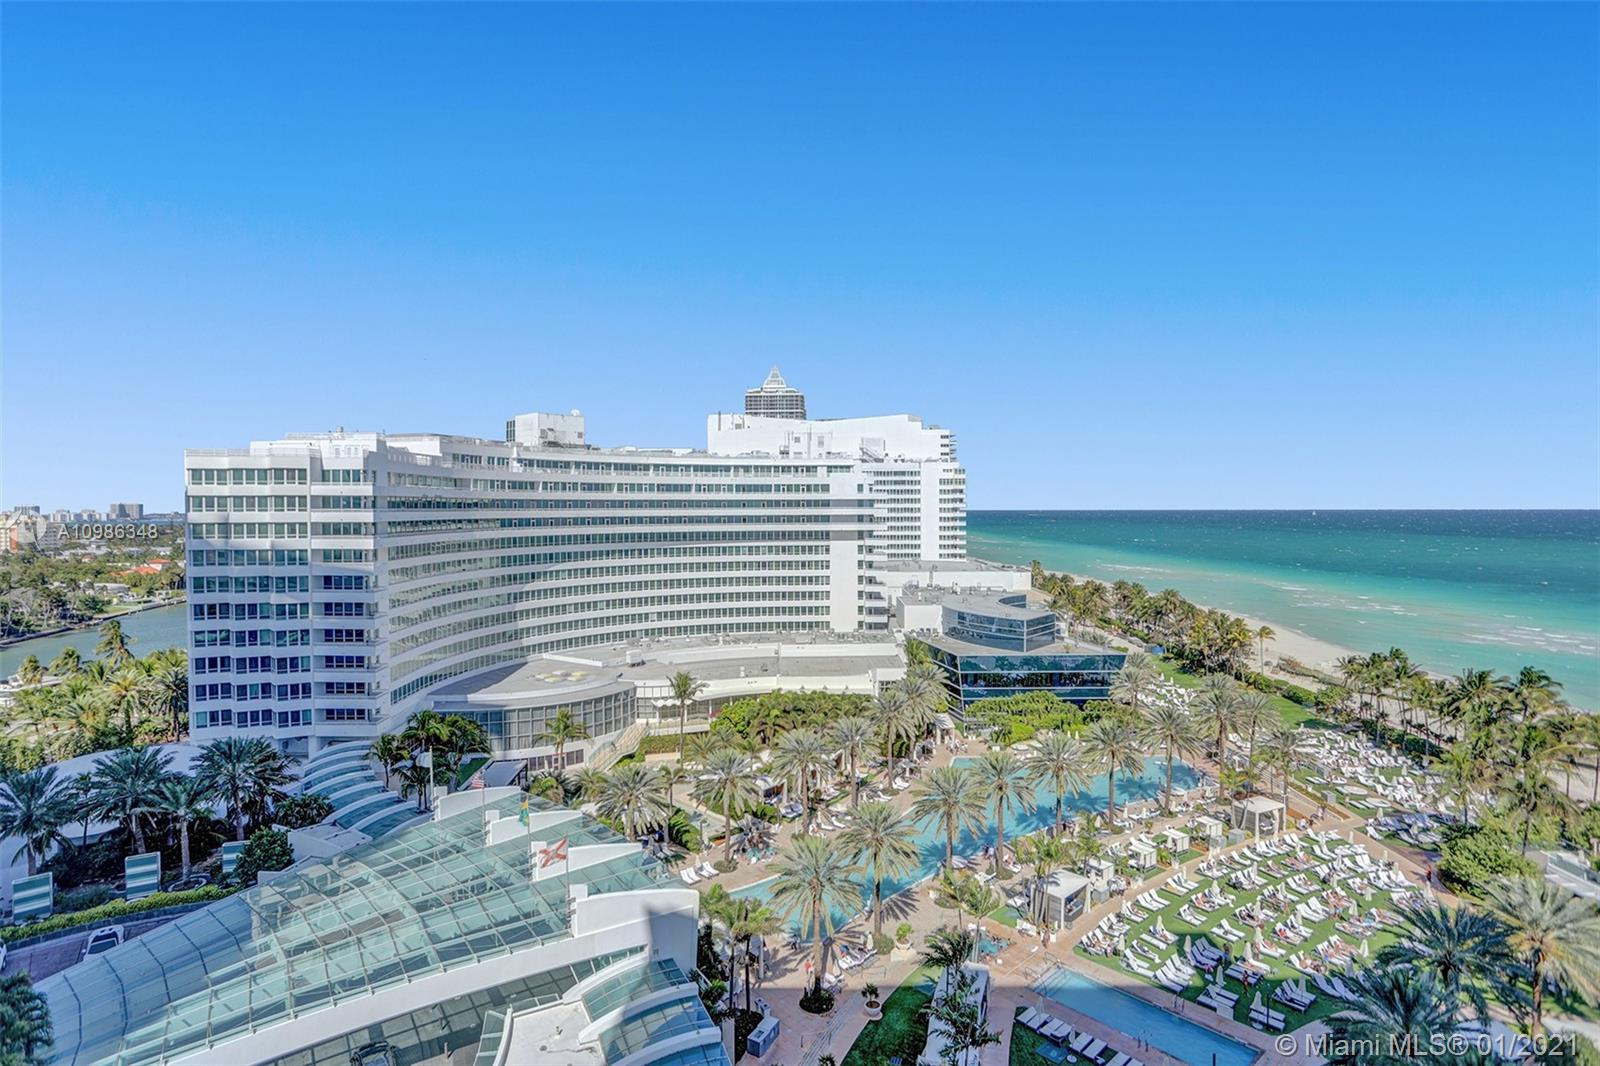 Beautiful just refurbished Jr Suite with 1 bath w/ocean & pool views at The Fontainebleau III. Enjoy full service, vacation-style living in a furnished turnkey unit with king bed, sleeper sofa & more. Enroll in hotel rental program & receive income while away! The Fontainebleau Resort offers luxury amenities on 22 oceanfront acres including award-winning restaurants, LIV night club, Lapis spa & state-of-the-art fitness center. Maintenance includes: AC, local calls, electricity, valet + daily free breakfast in the owners lounge.